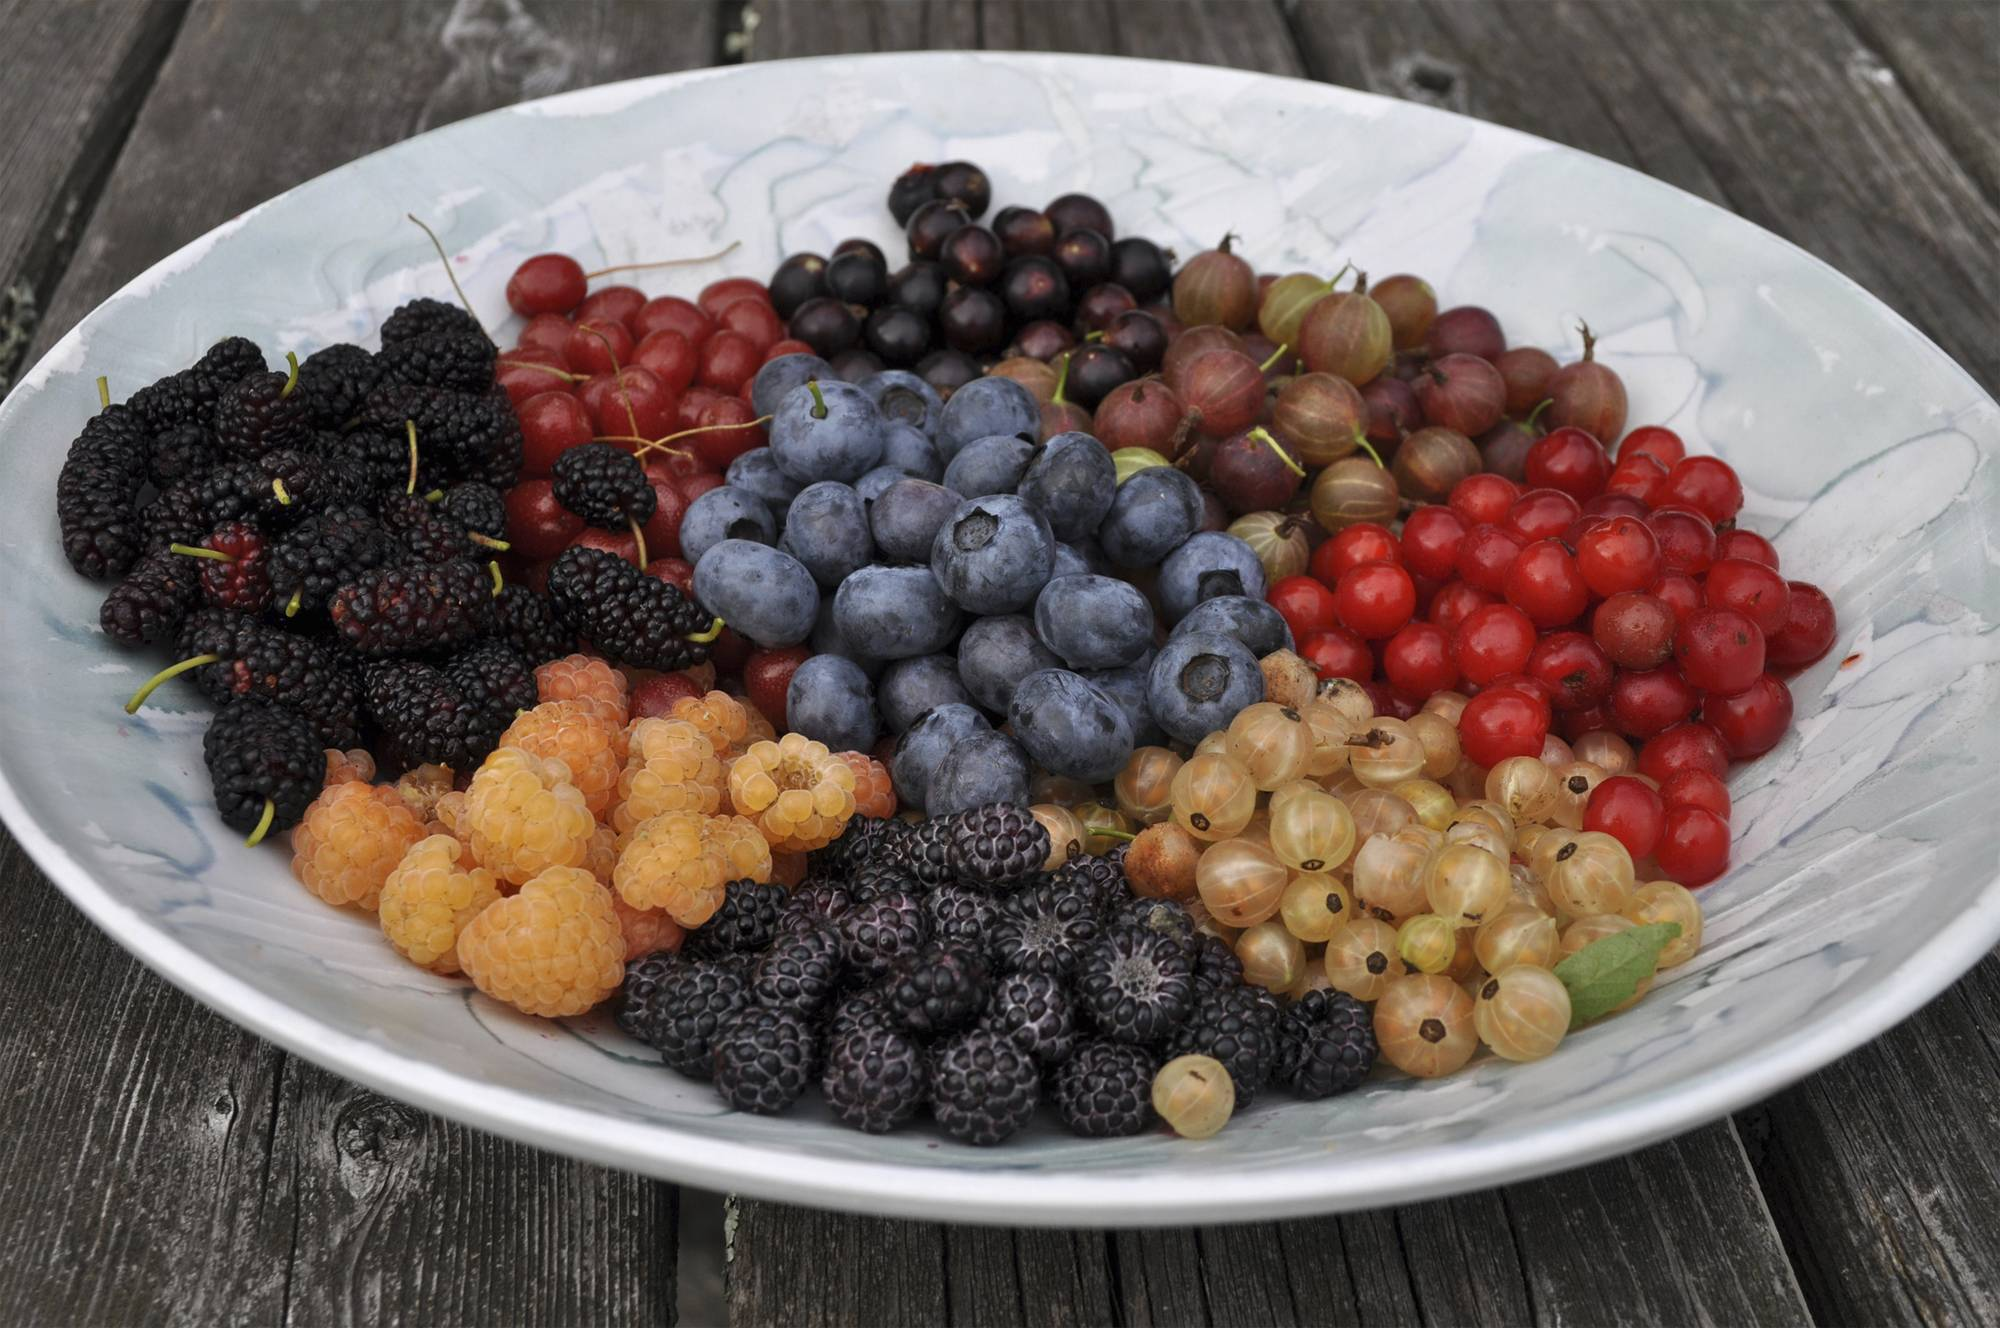 Berries are the quintessential summer fruit but, with choice of appropriate varieties, raspberries, blackberries, and blueberries can go on to yield their delectable bounty into fall.